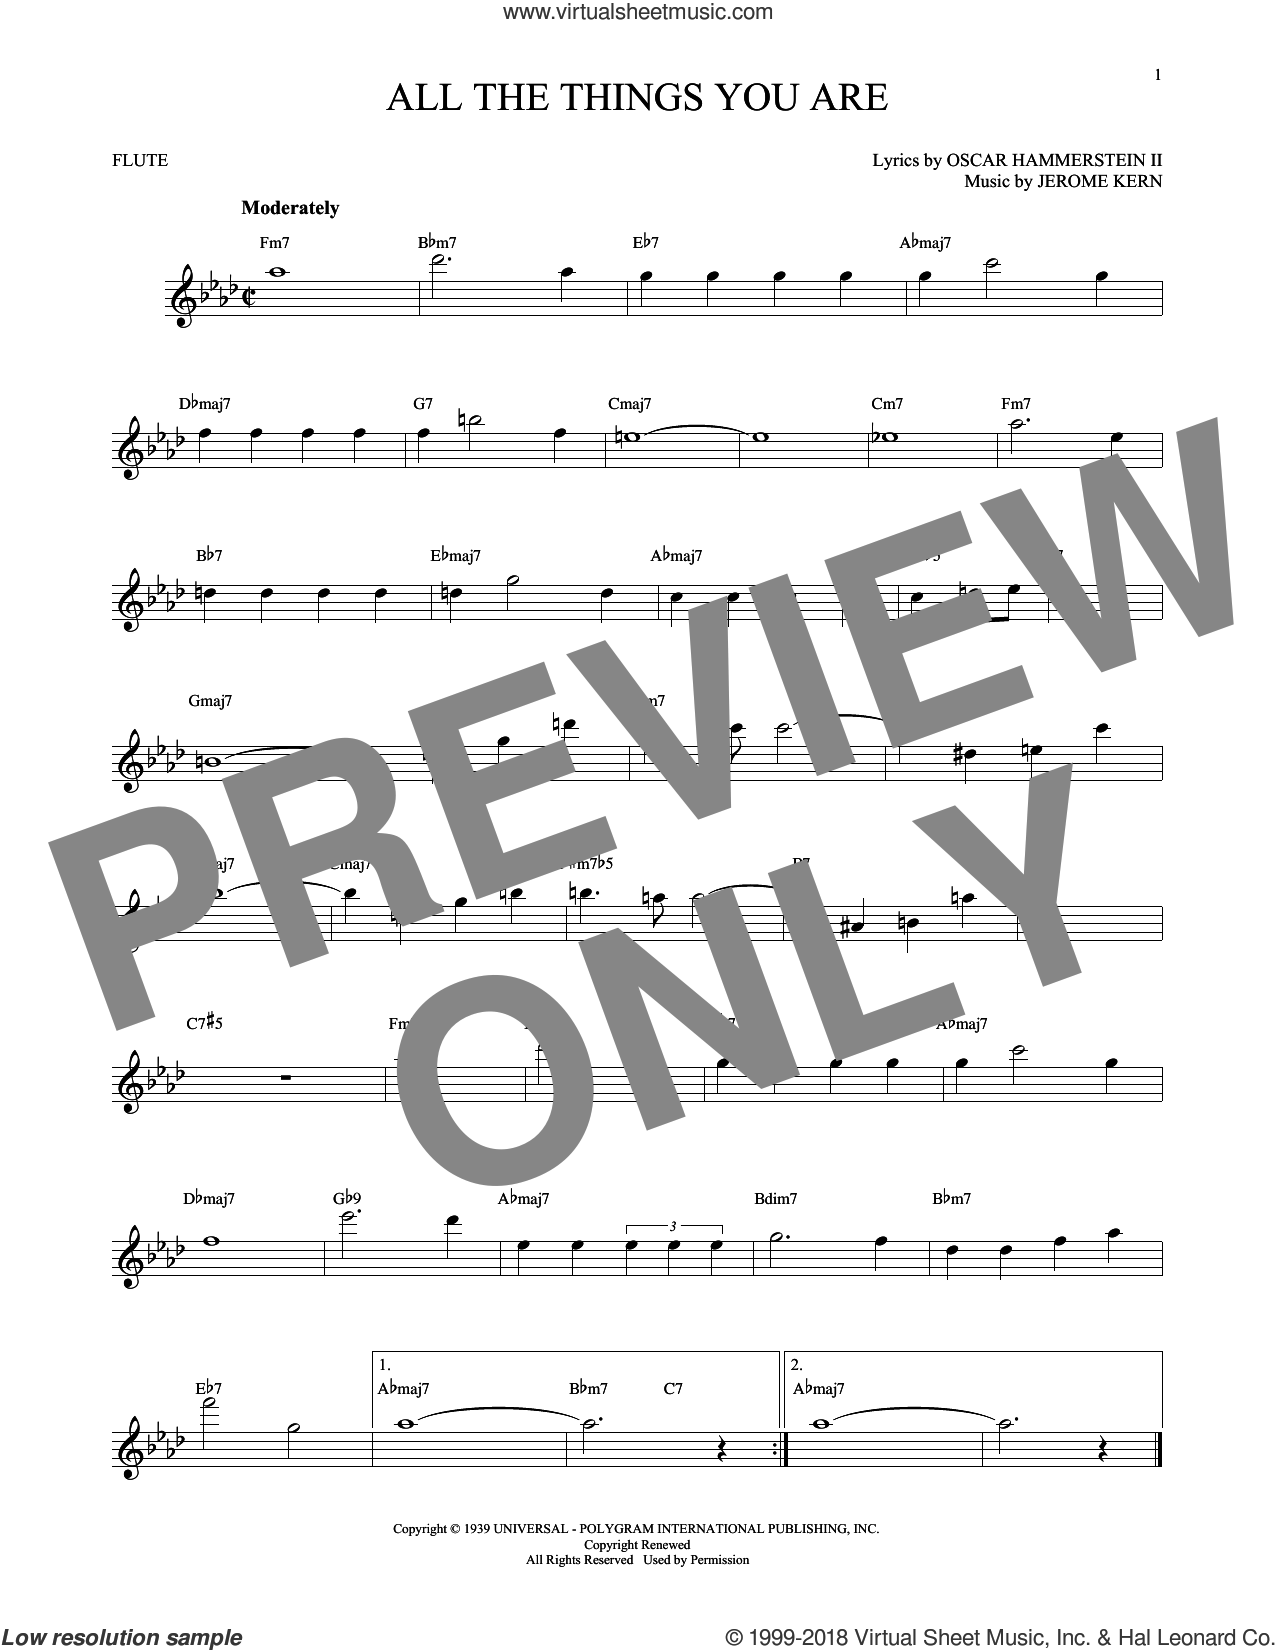 All The Things You Are sheet music for flute solo by Oscar II Hammerstein